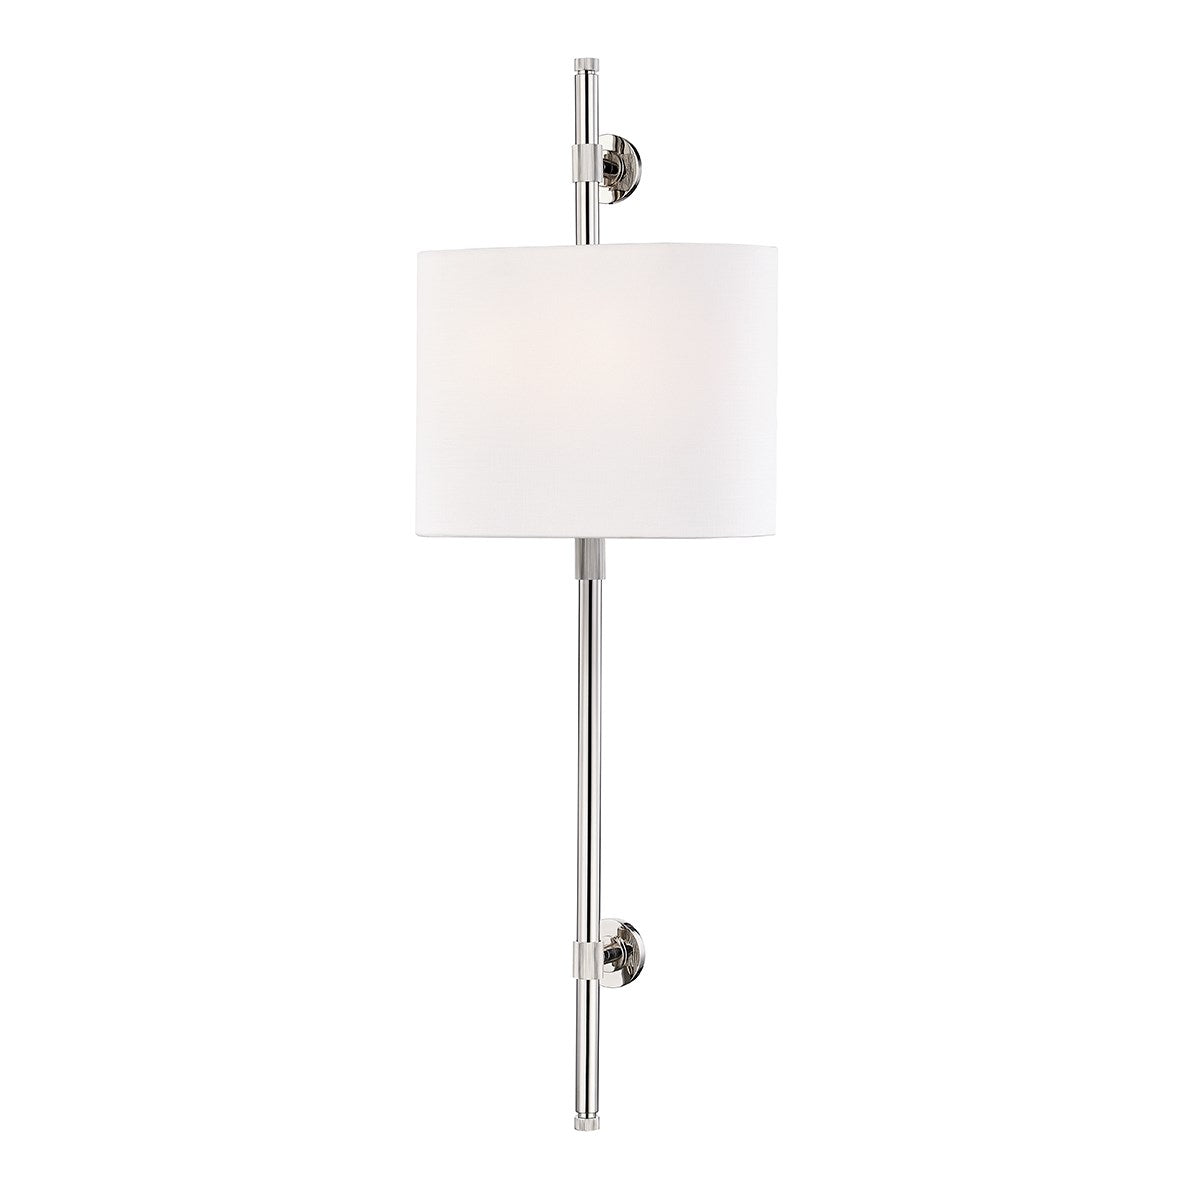 Bowery Polished Nickel Wall Sconce